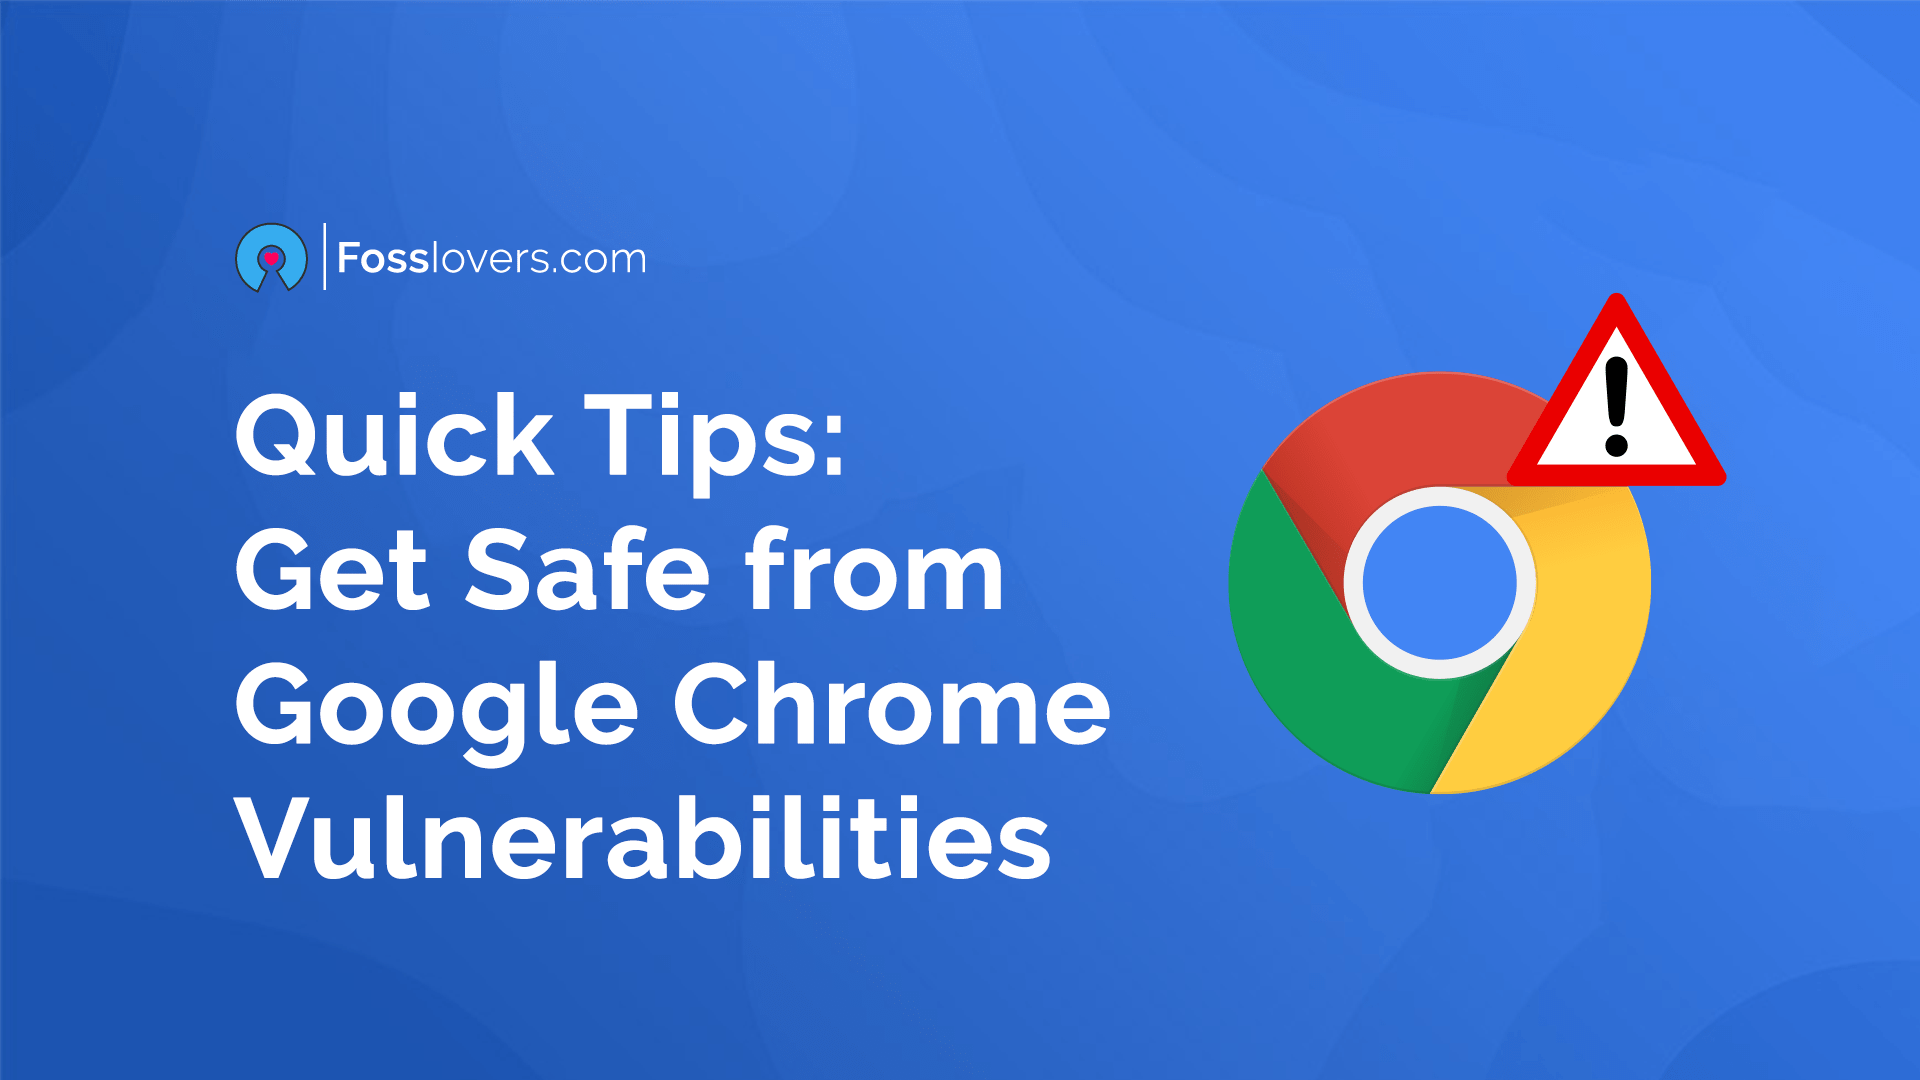 Quick Tips Get Safe from Google Chrome Vulnerabilities